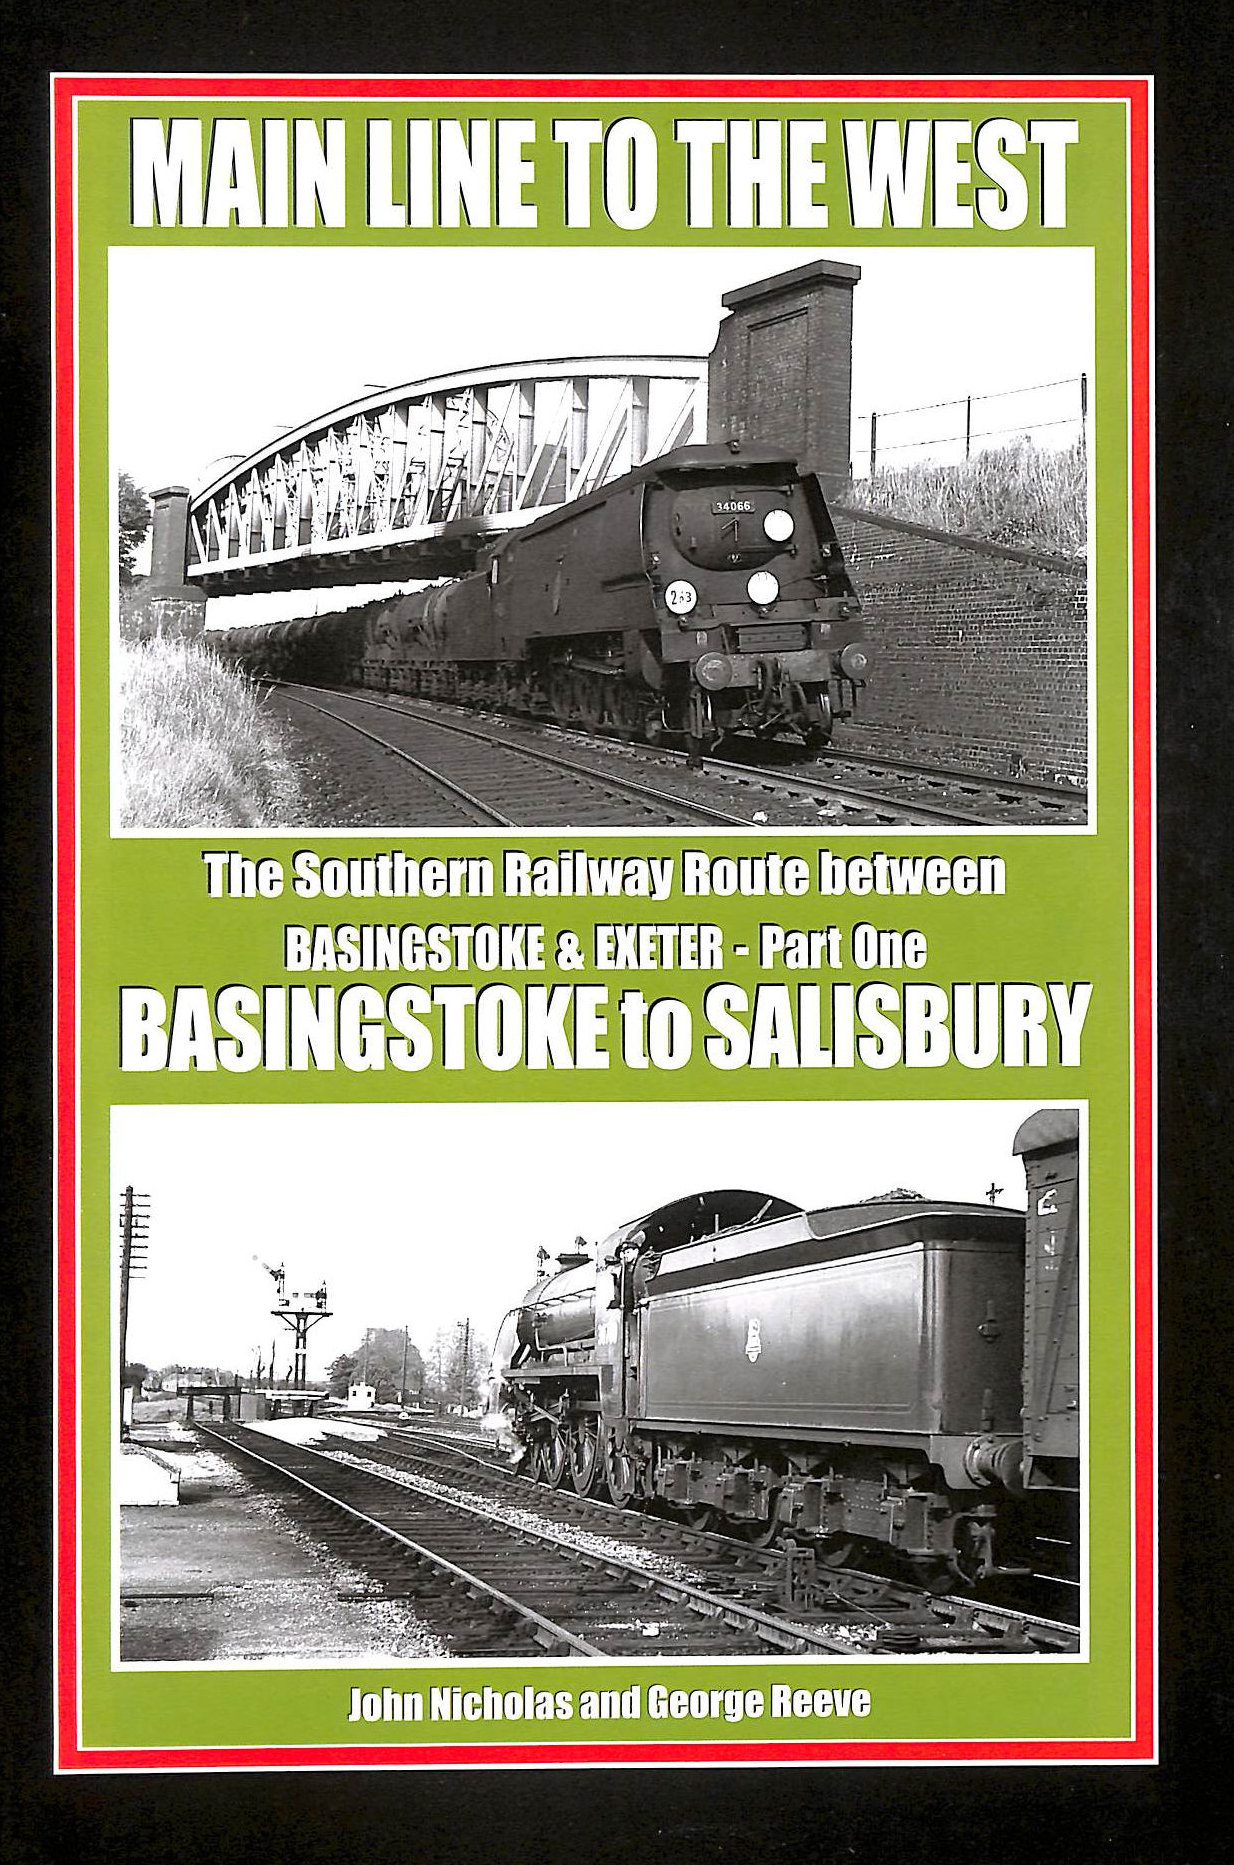 NICHOLAS, JOHN; REEVE, GEORGE - Main Line to the West: Basingtoke to Salisbury Pt. 1: The Southern Railway Route Between Basingstoke and Exeter